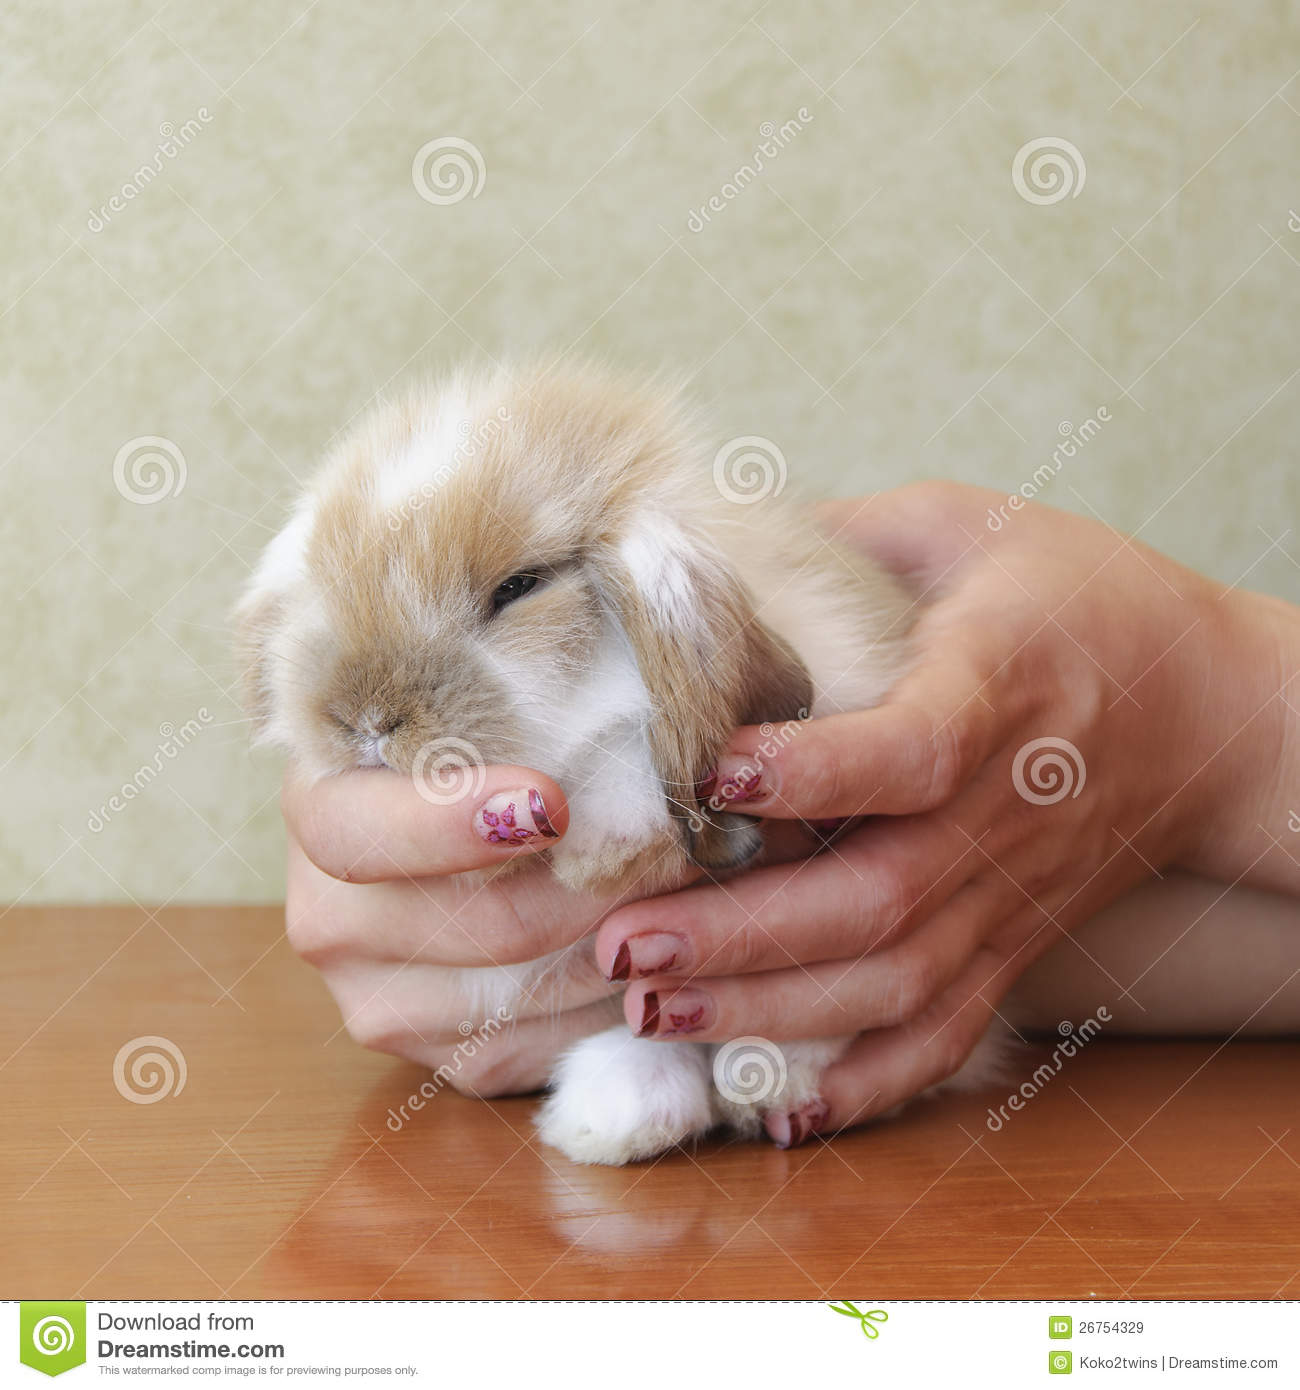 Baby lop eared rabbit - photo#28